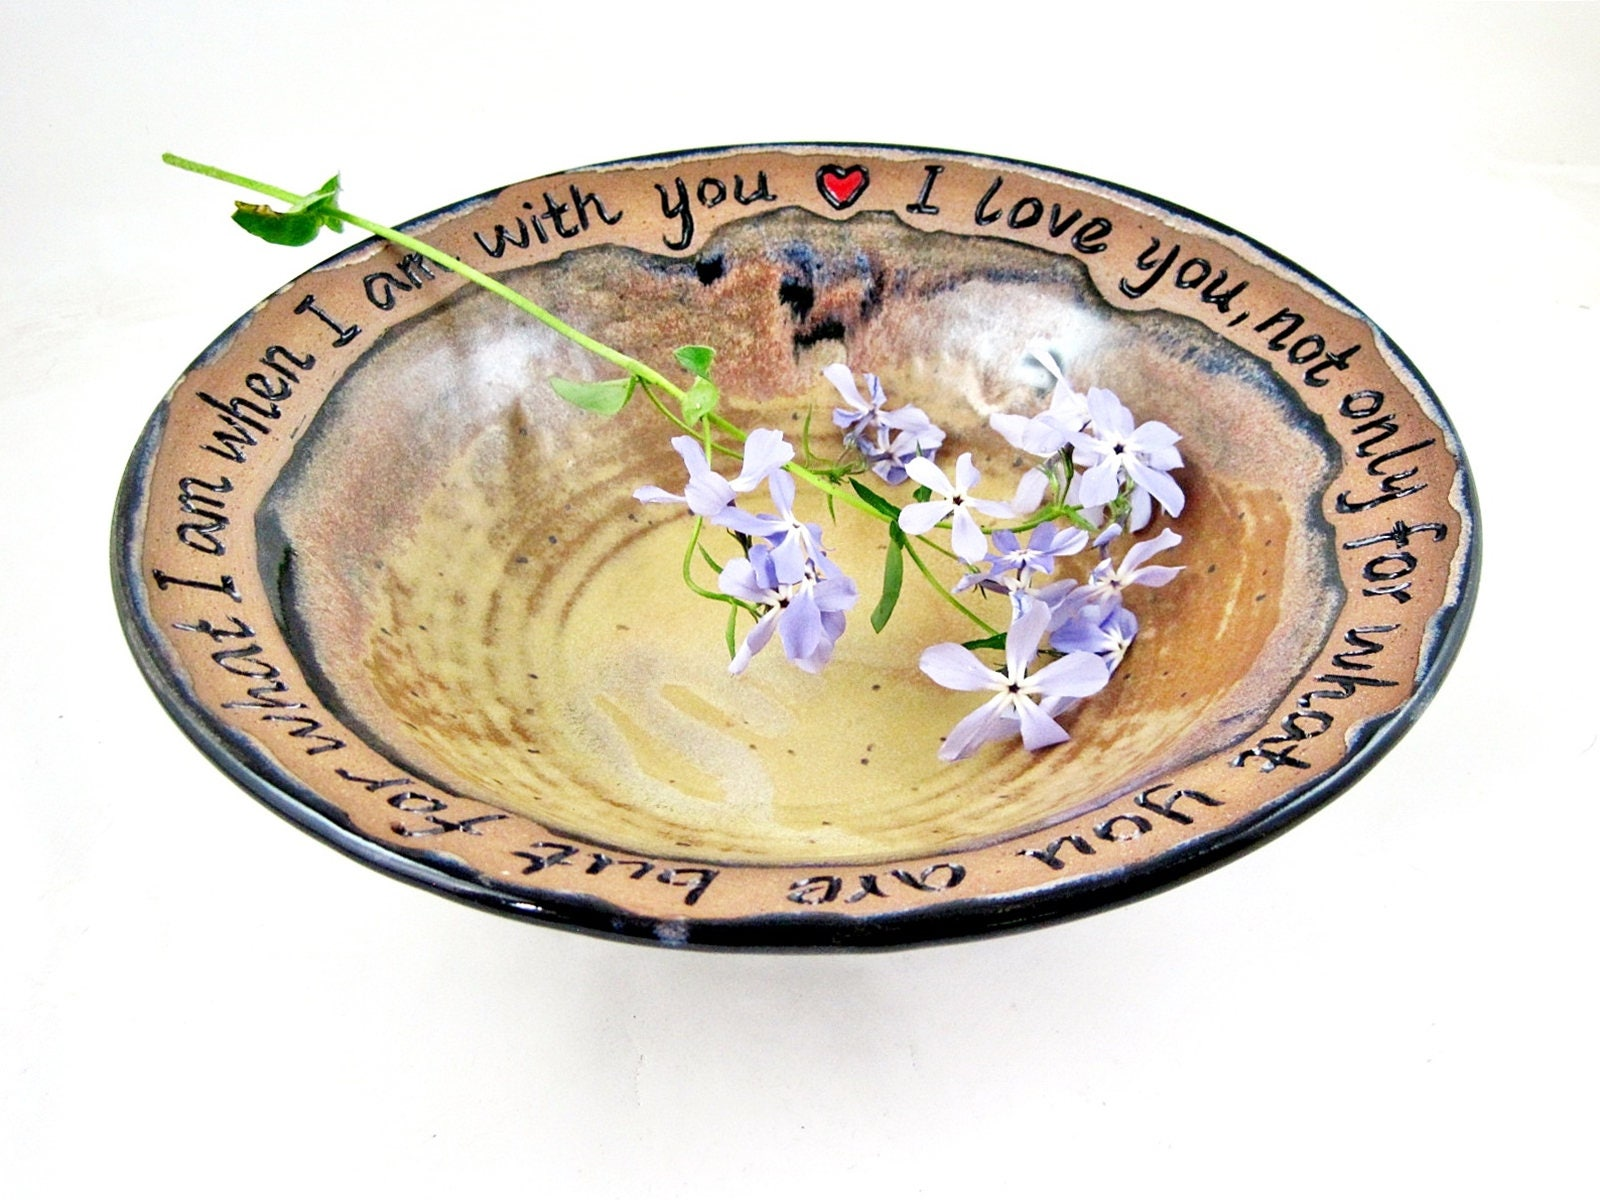 9th Anniversary Pottery For Wedding: Personalized Pottery Anniversary Gift Customized 9th